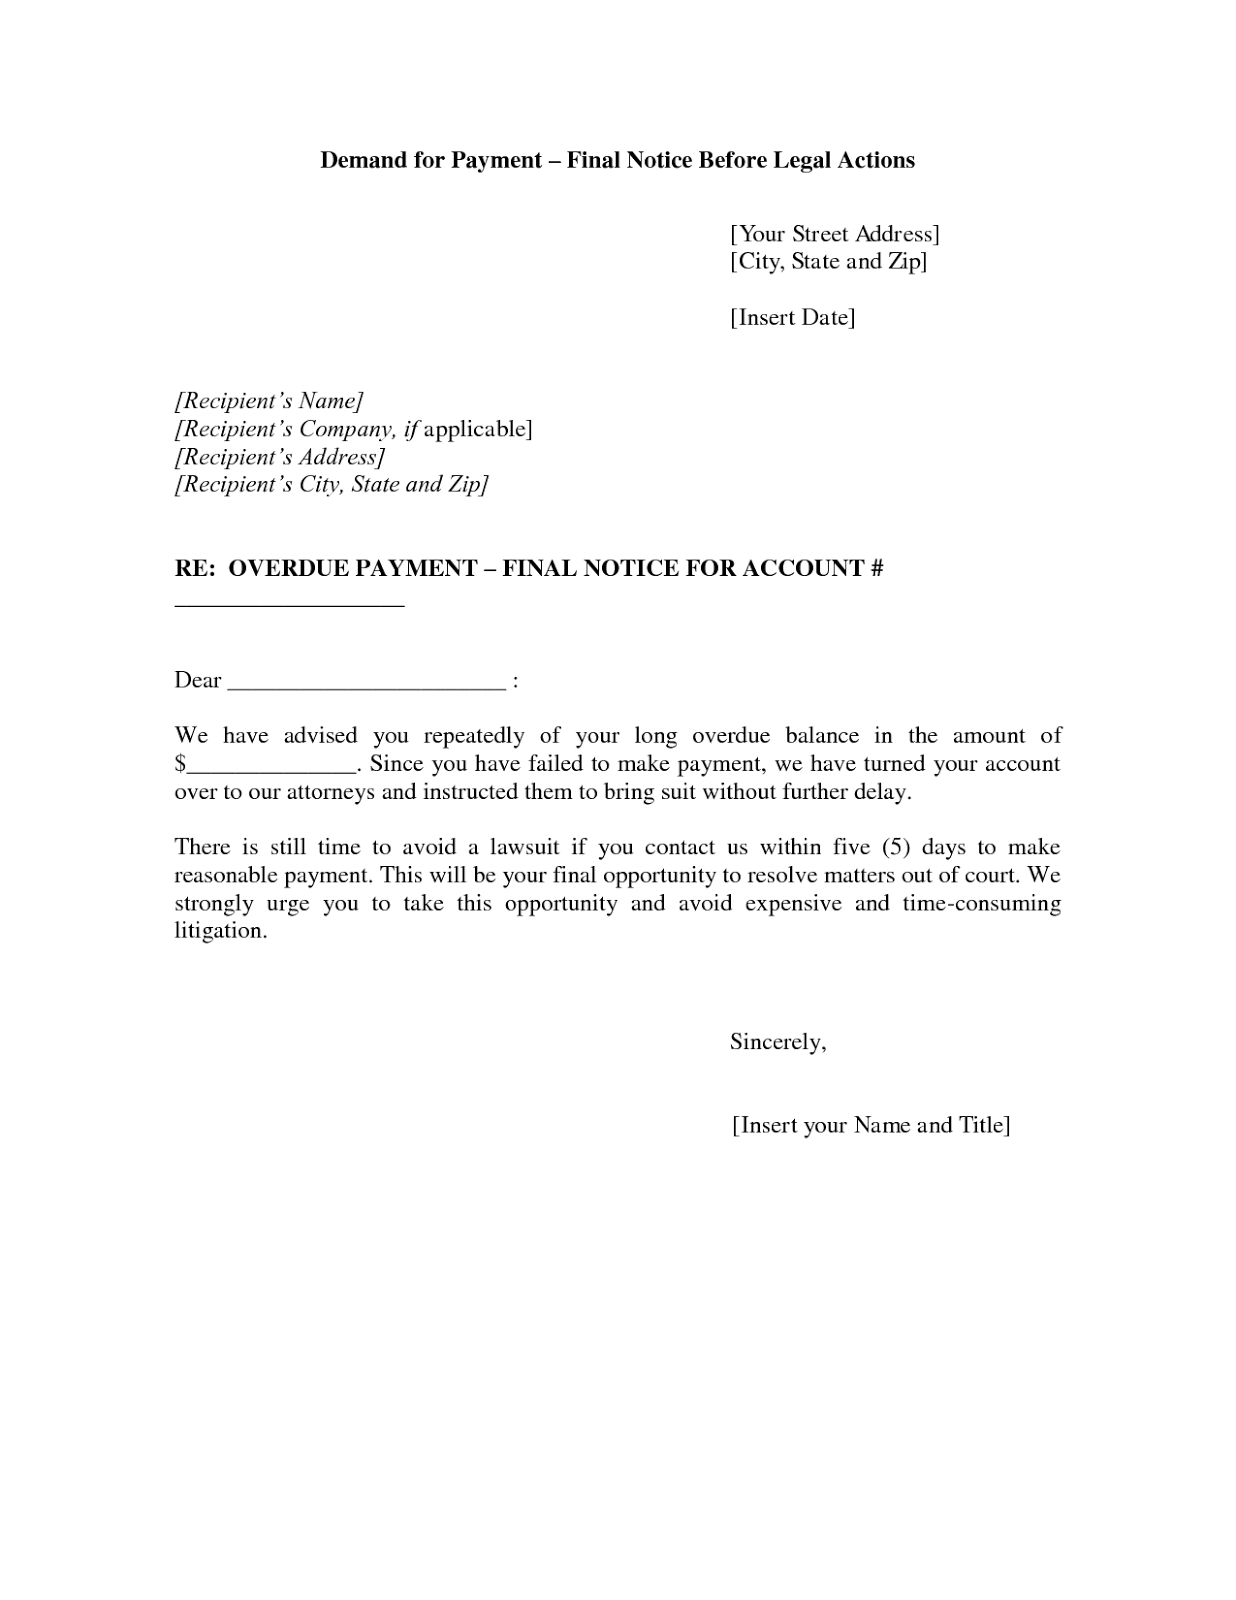 Demand For Payment Letter. Demand For Payment First Demand Letter ...